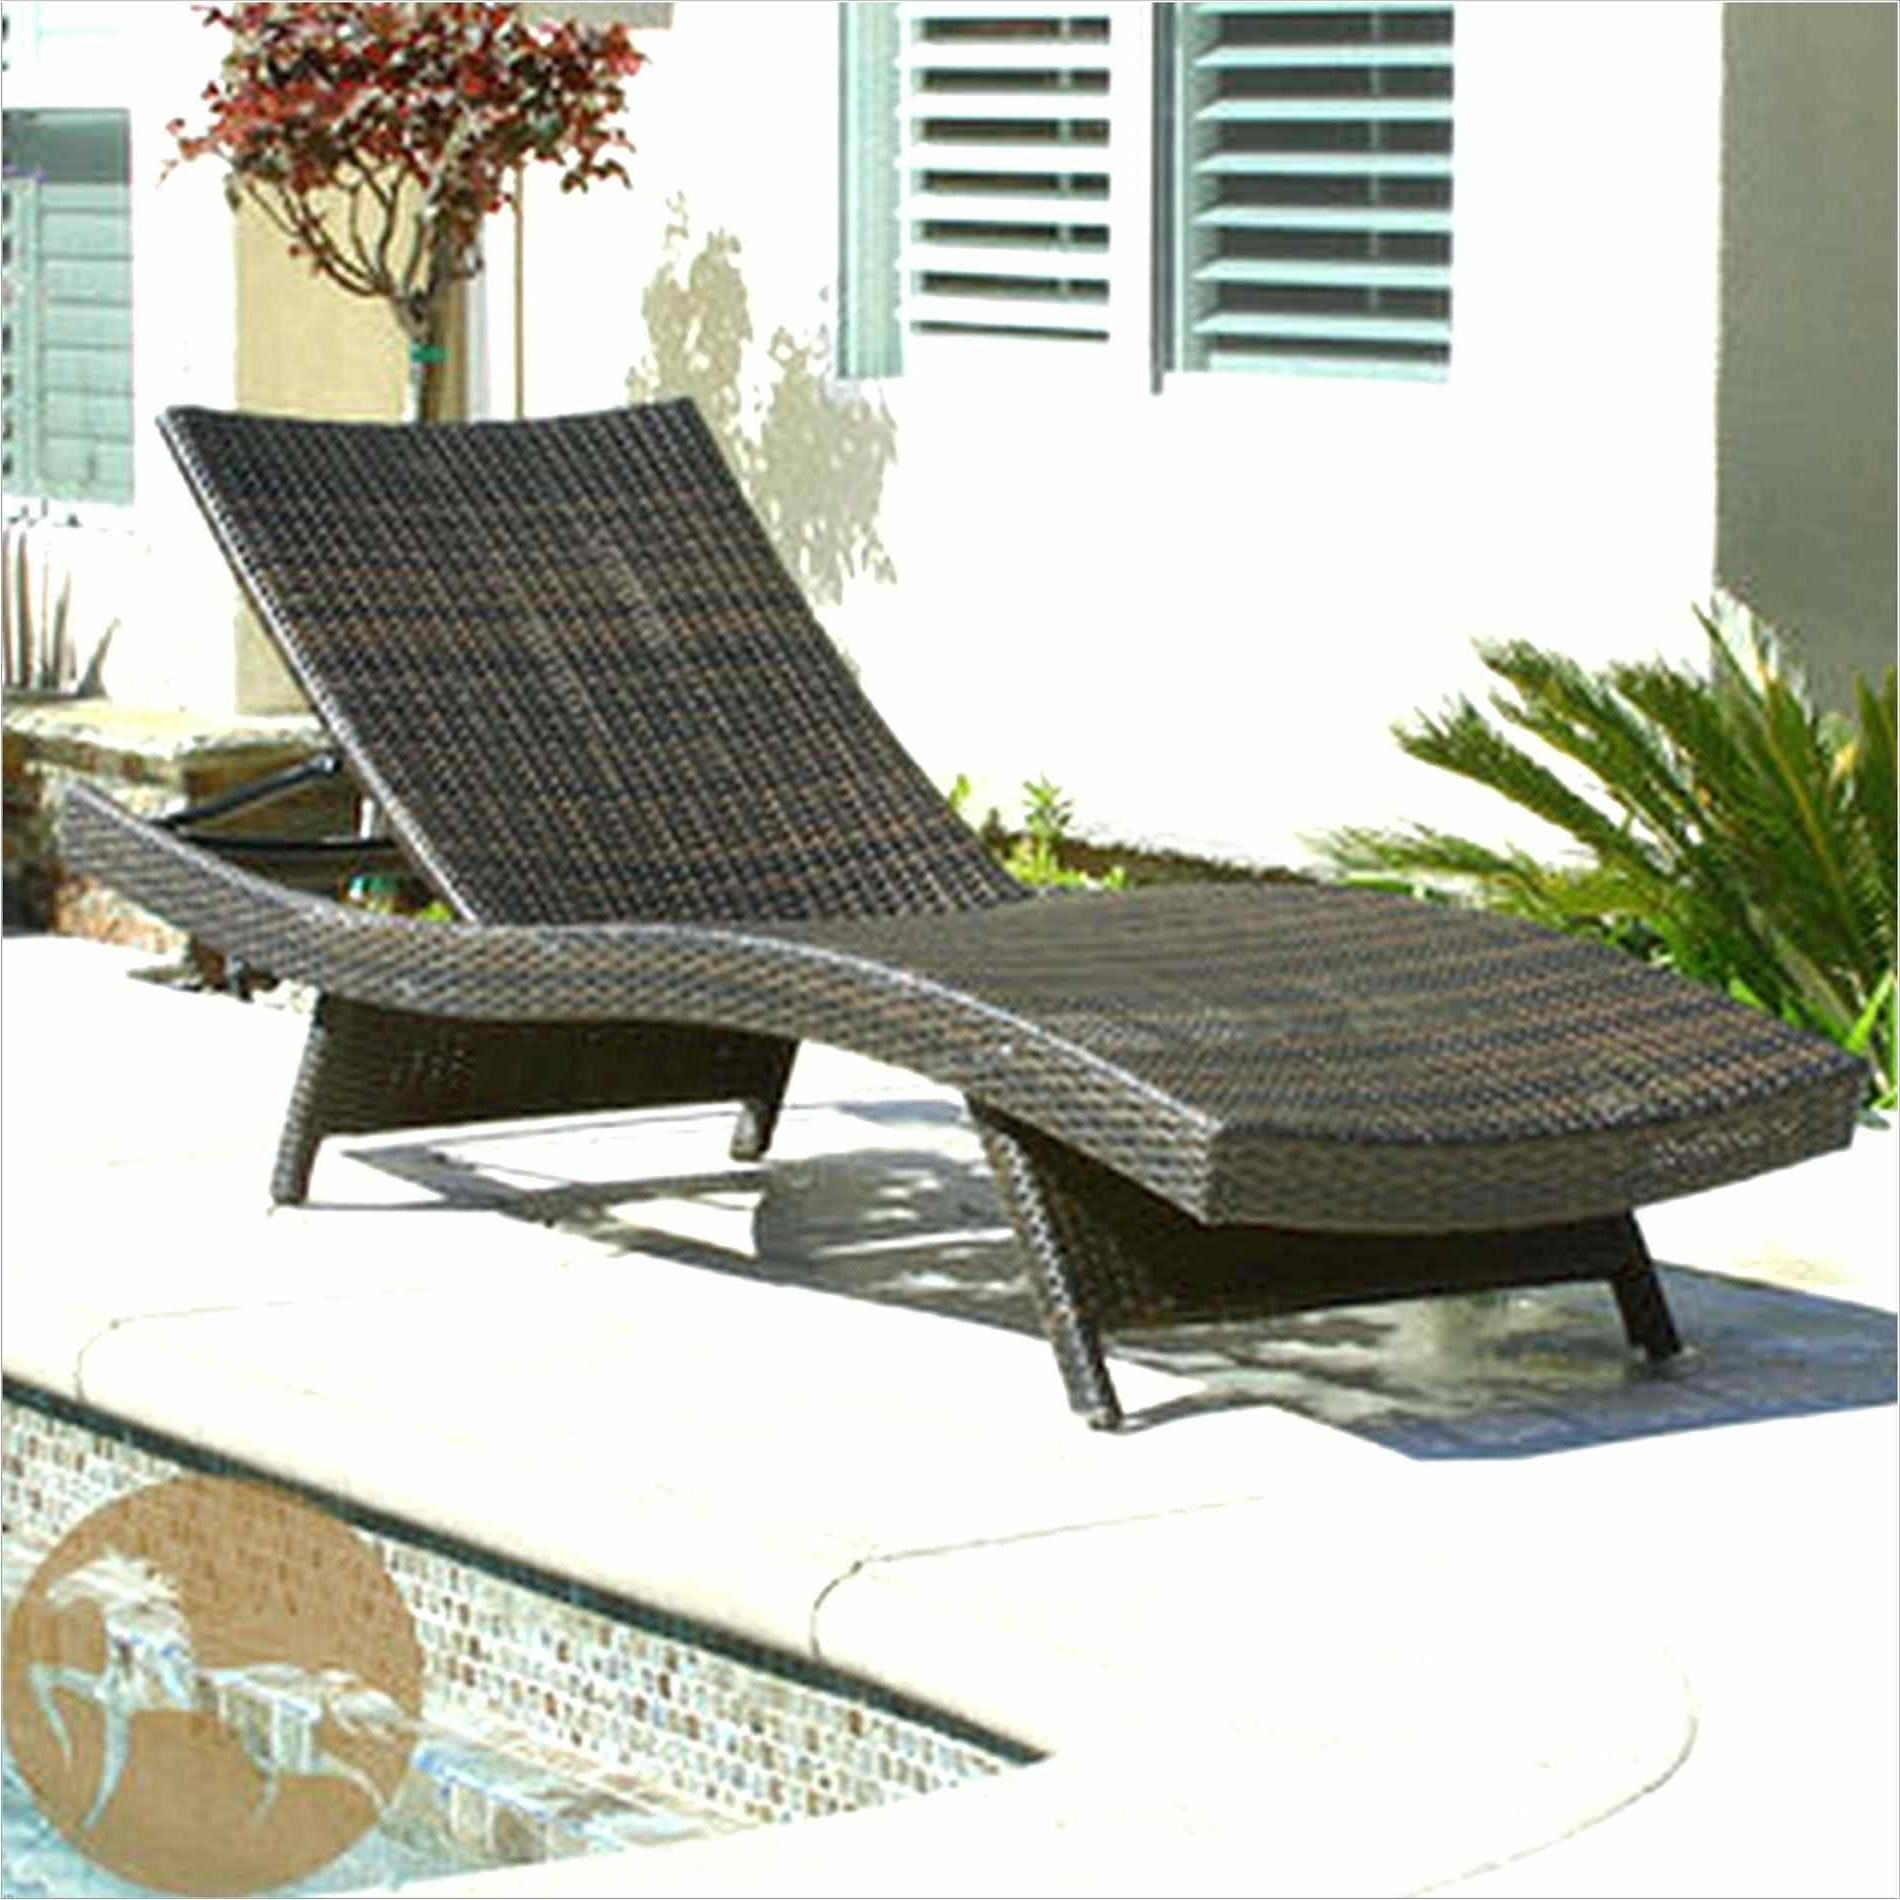 Lounge Chair : Chaise Lounge Chair Dimensions Lounge Chairs Pertaining To Fashionable Chaise Lounge Chairs In Toronto (View 8 of 15)